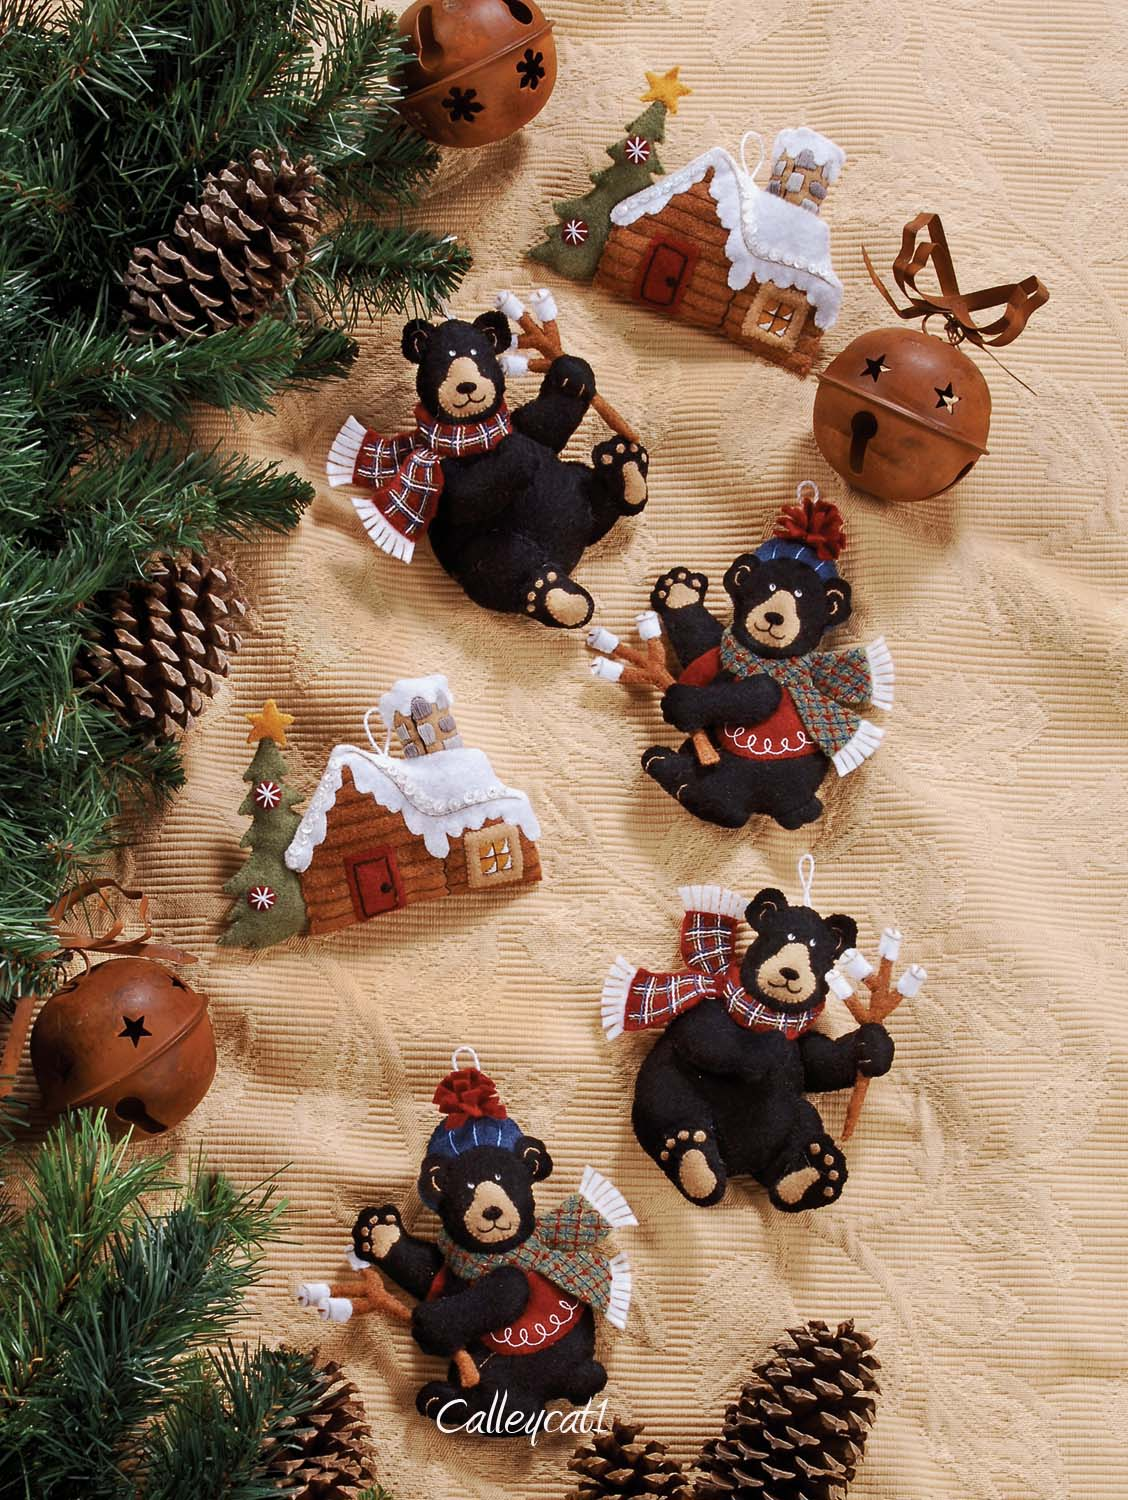 black bear bonfire bucilla felt ornament kit 85460